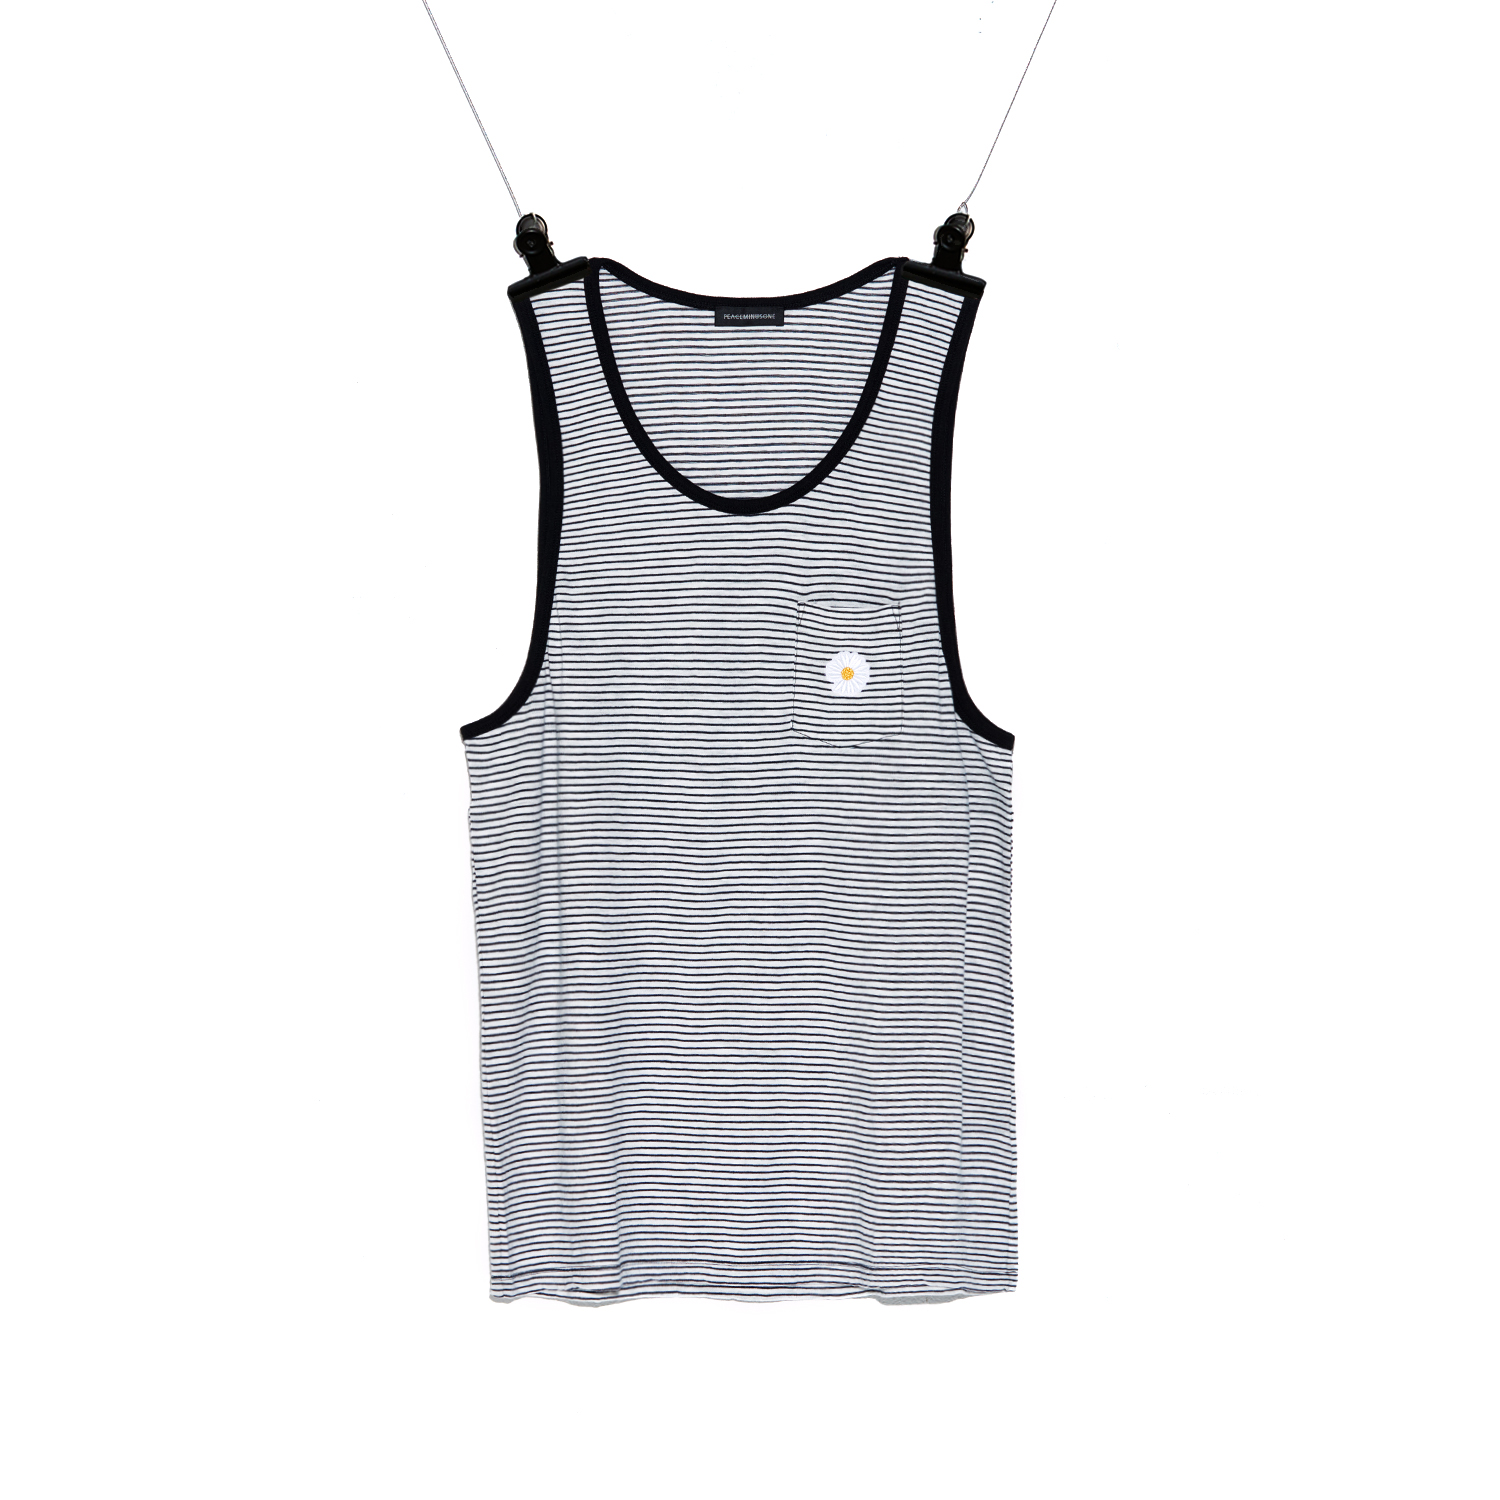 PMO TANK TOP #1 BLACK